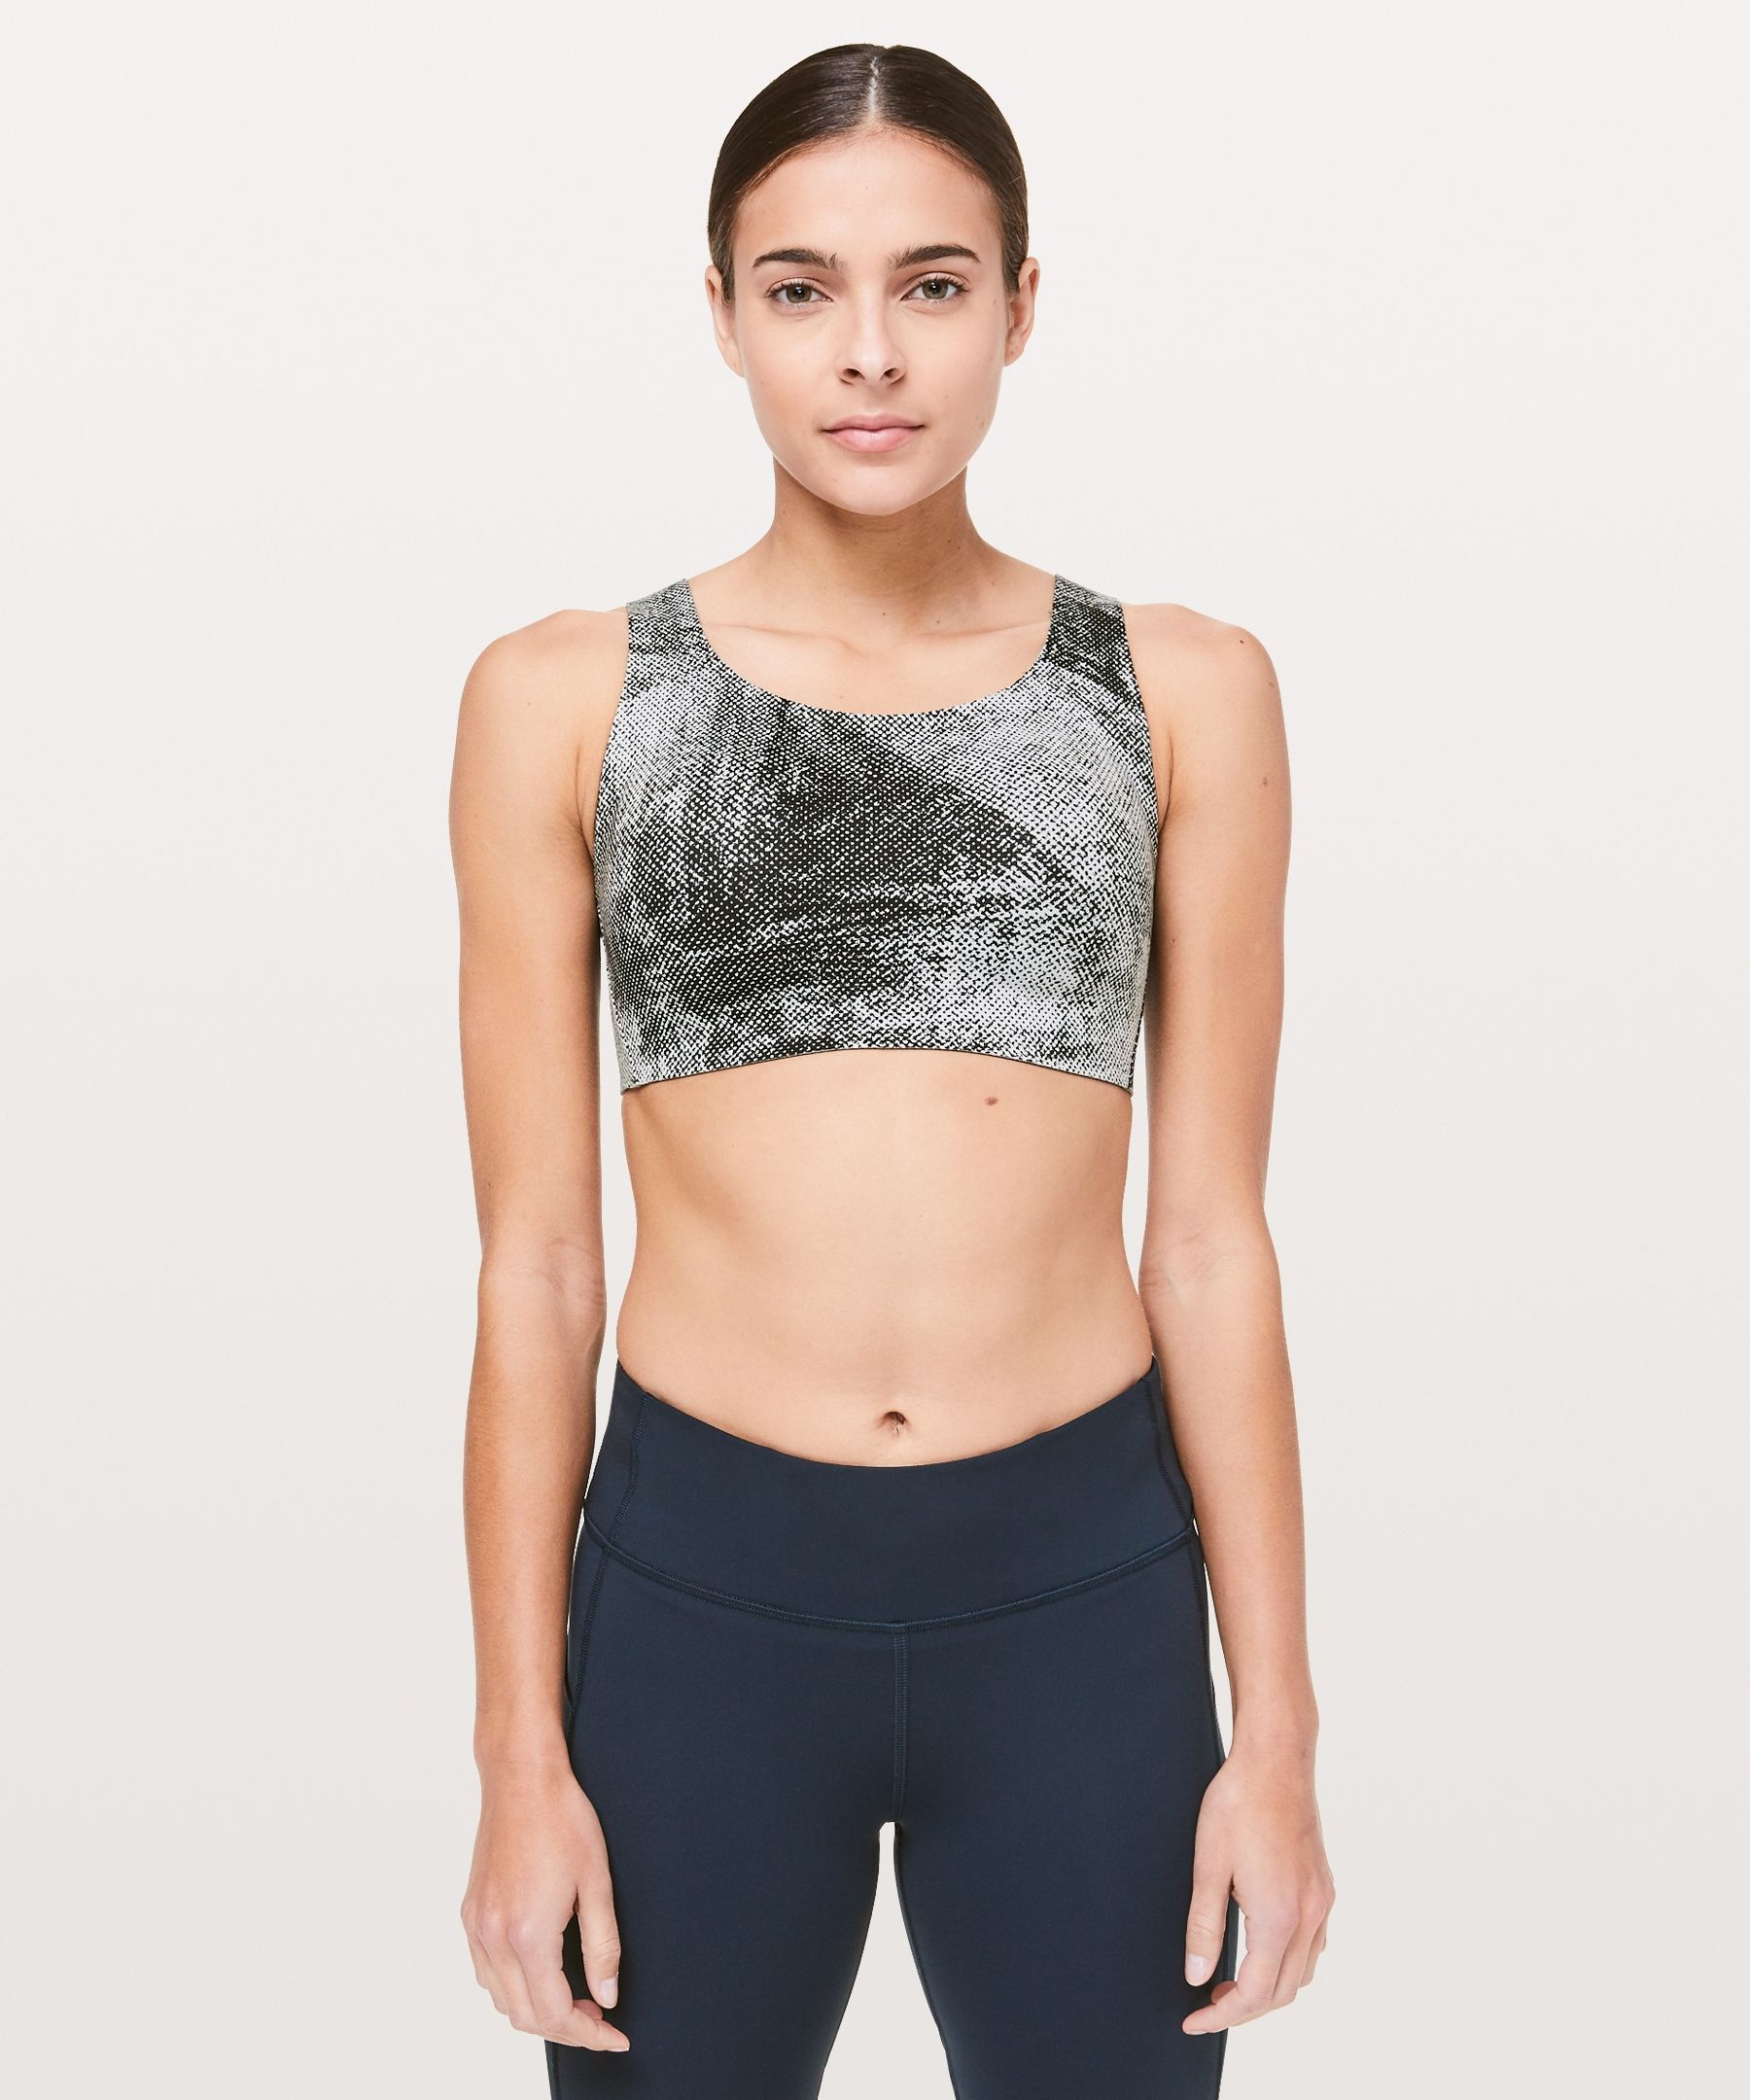 0f8a7c26 The best sports bras for running 2019